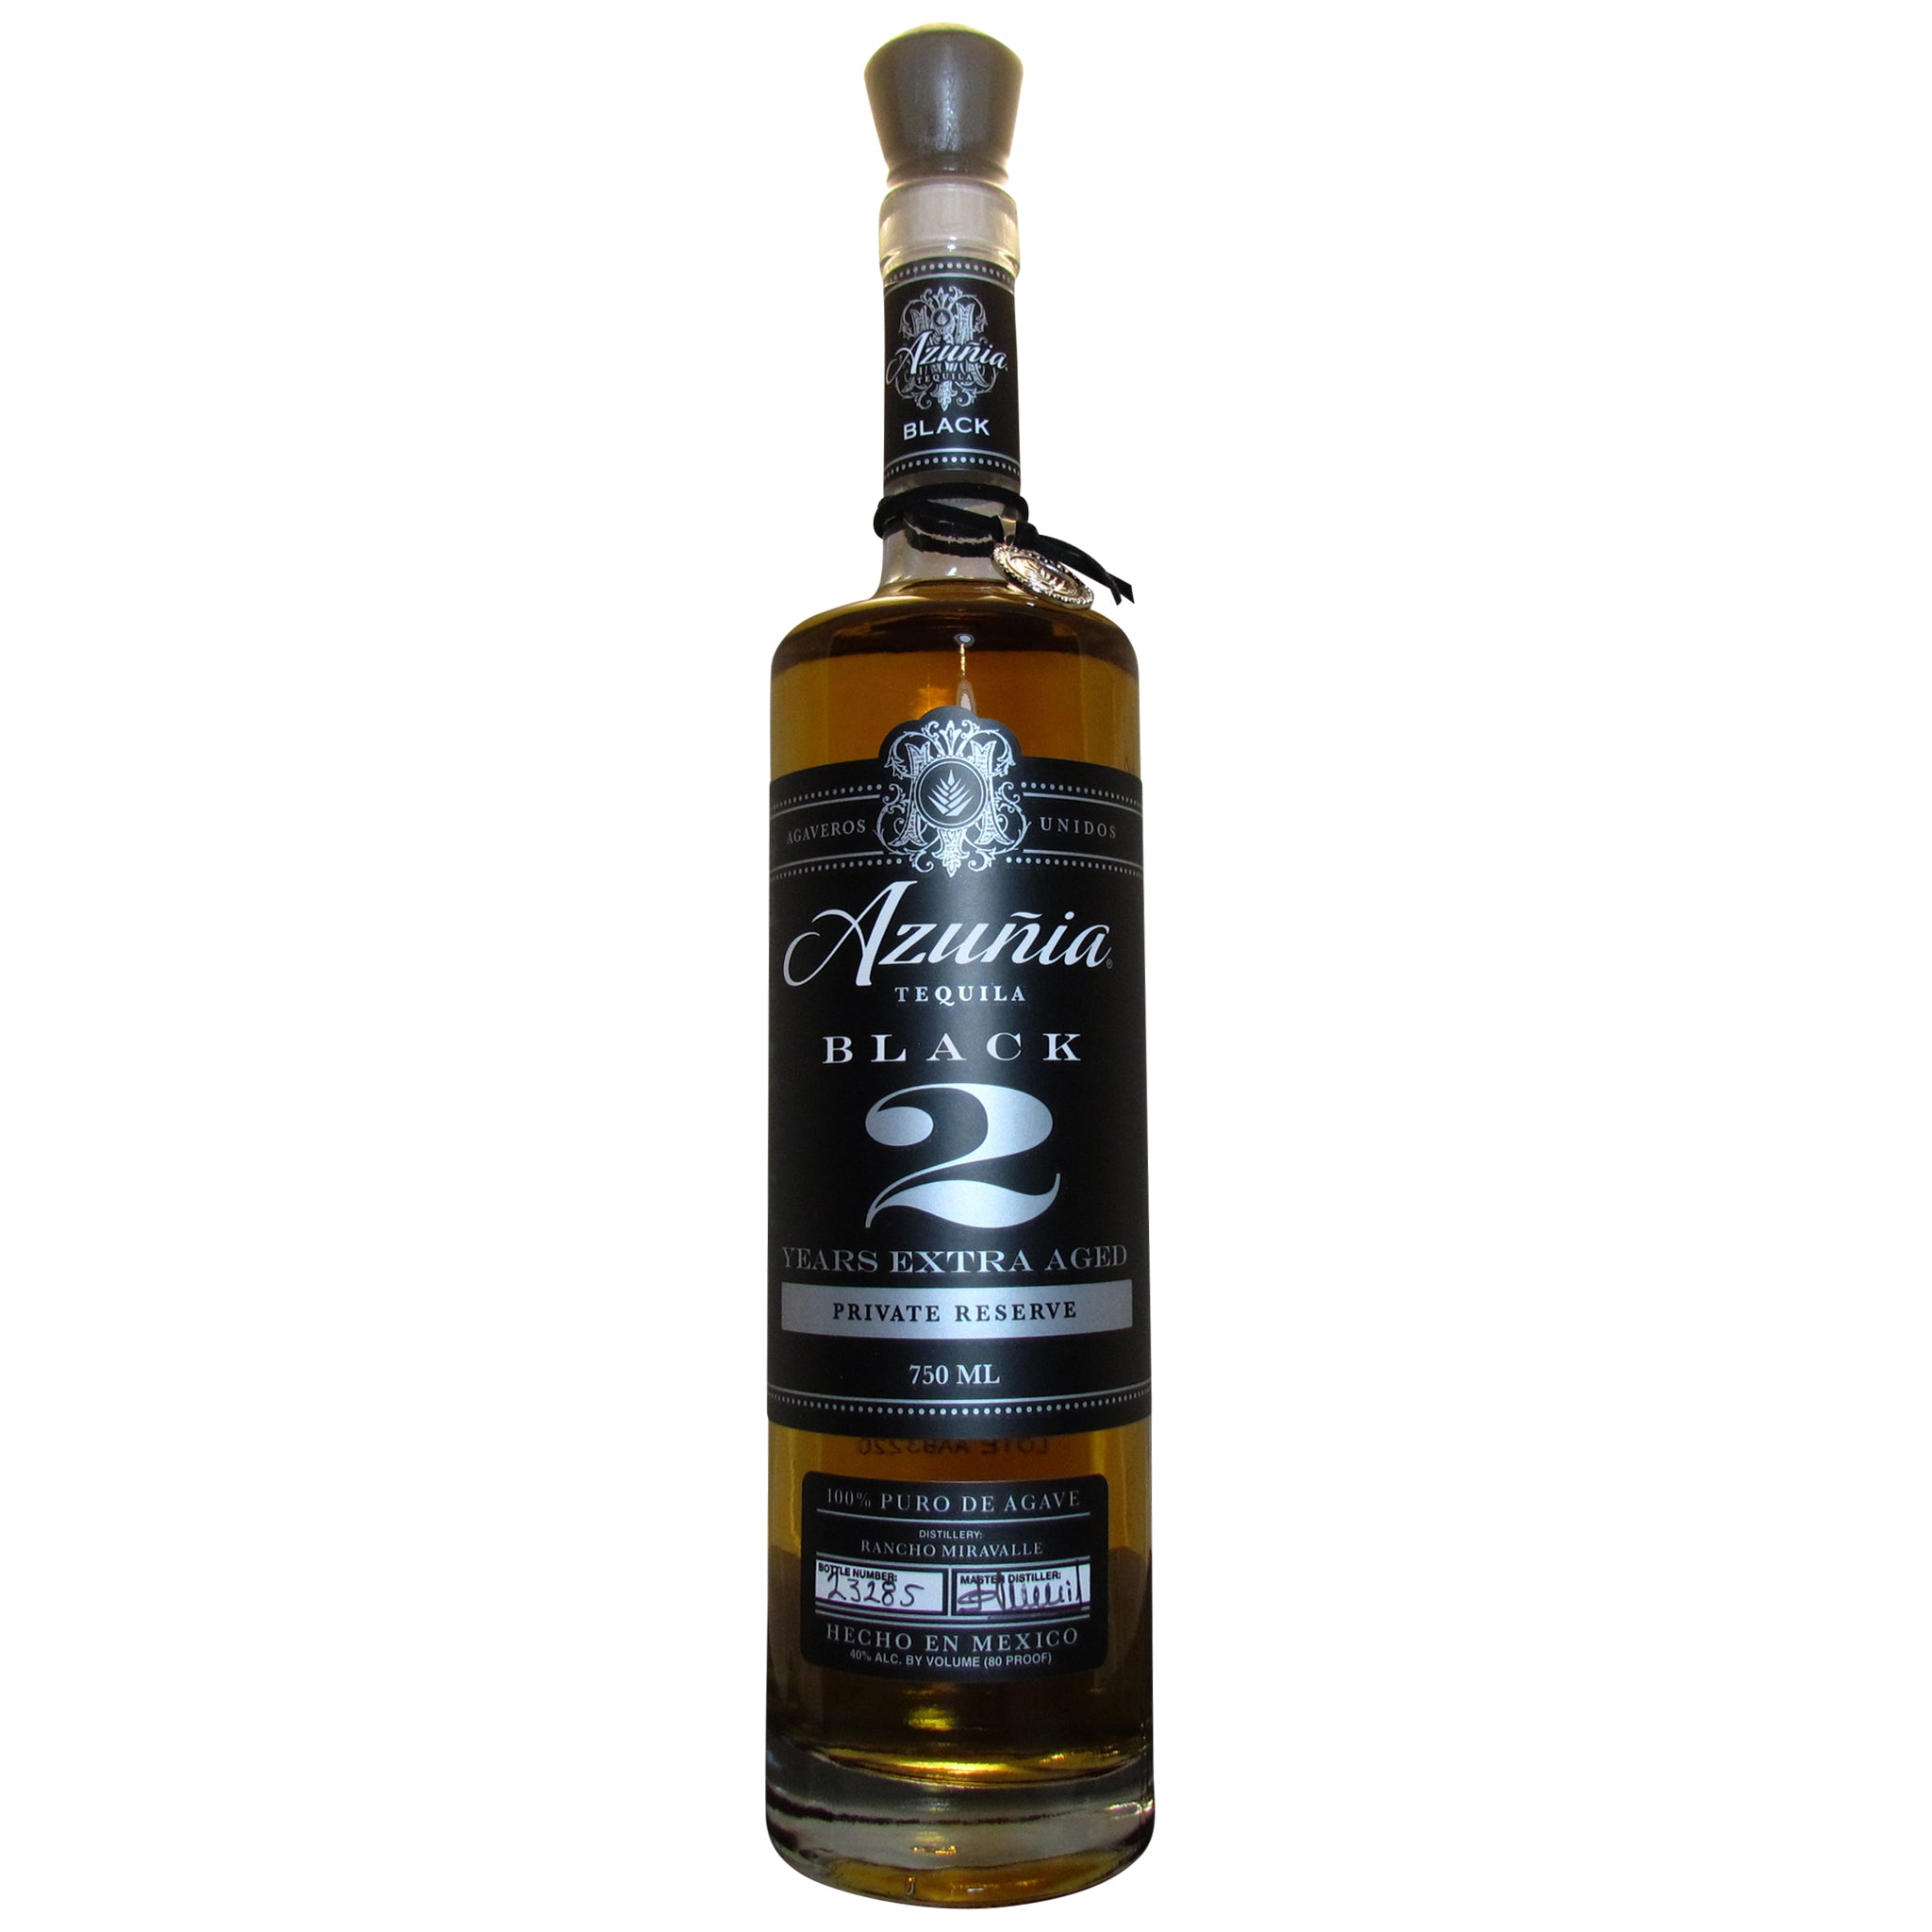 Azuñia 2 Years Old Aged Black Private Reserve Añejo Tequila 100% de Agave